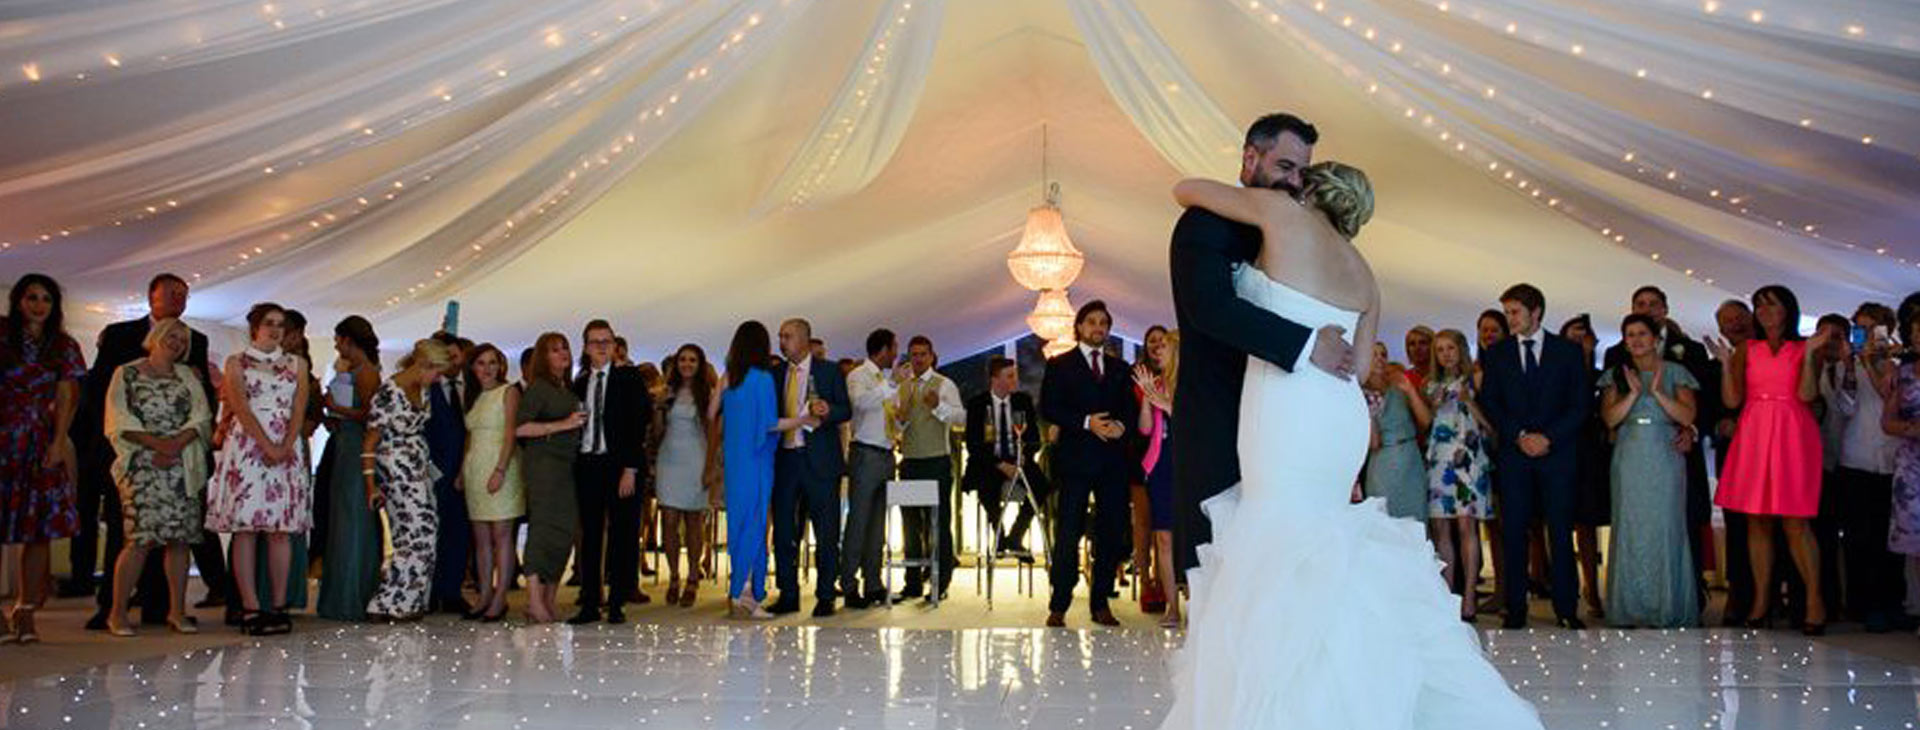 bride and groom first dance in a wedding marquee